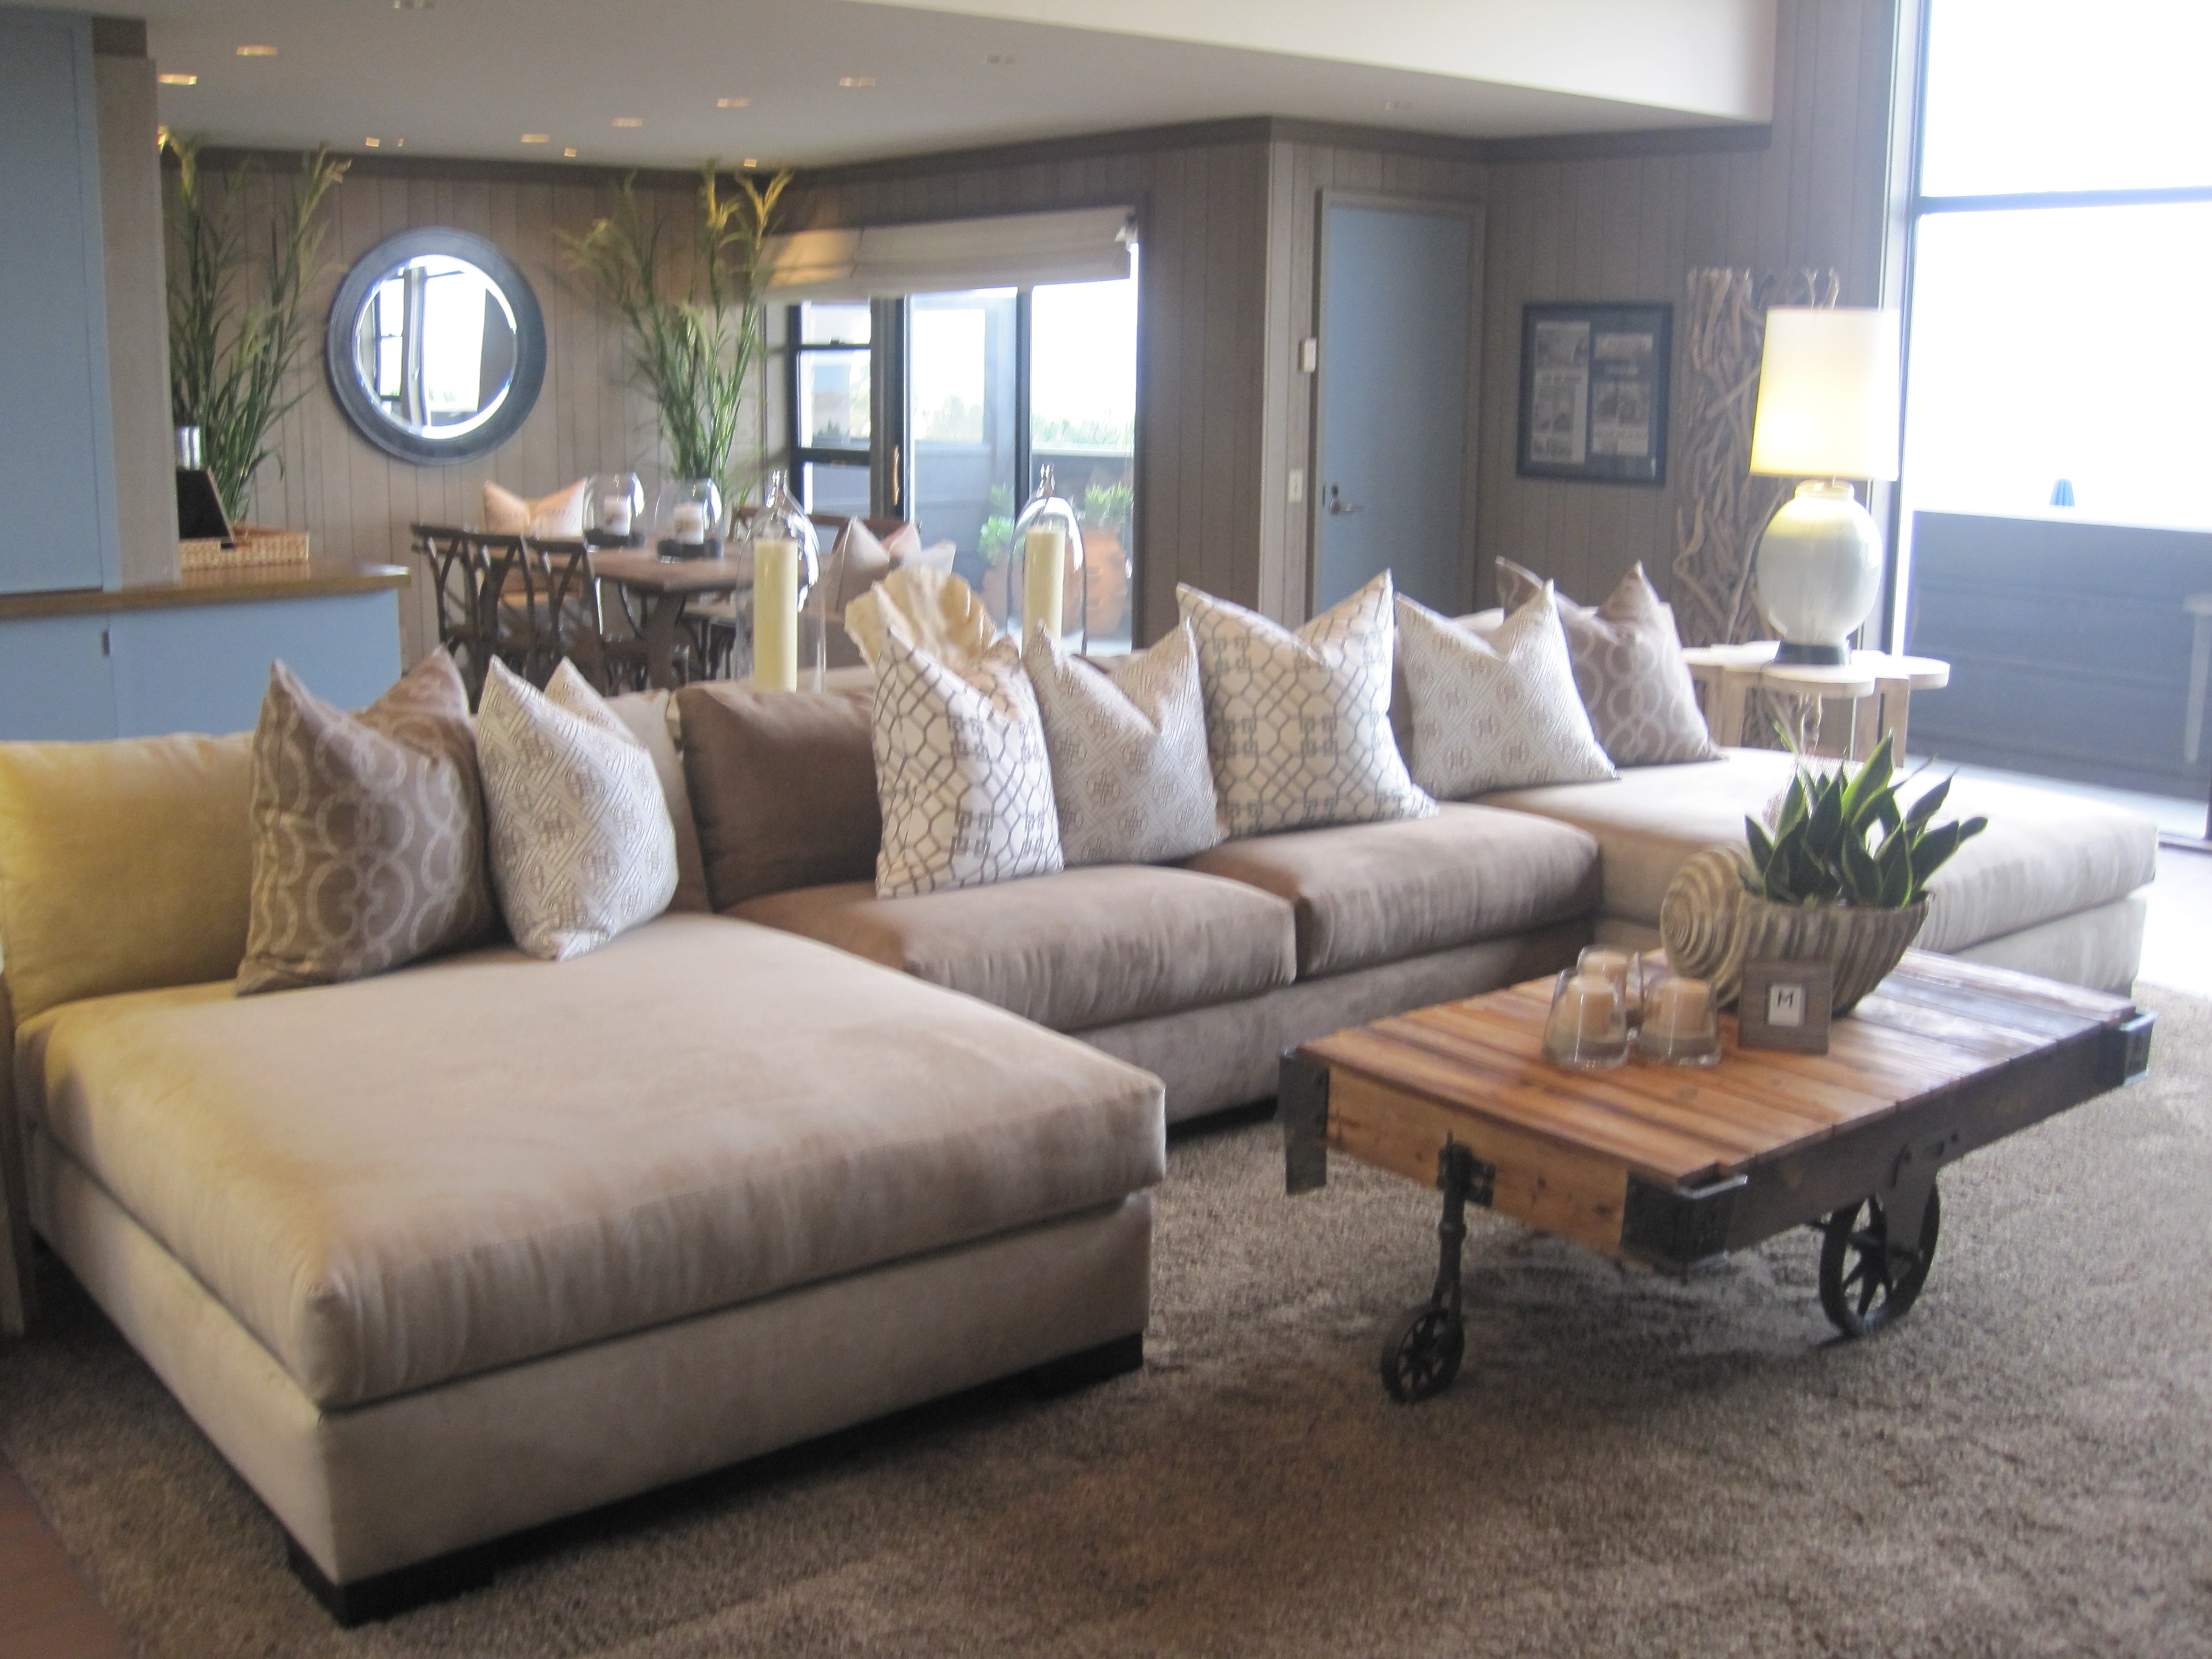 Macys Throughout Latest Berkline Sectional Sofas (View 10 of 20)